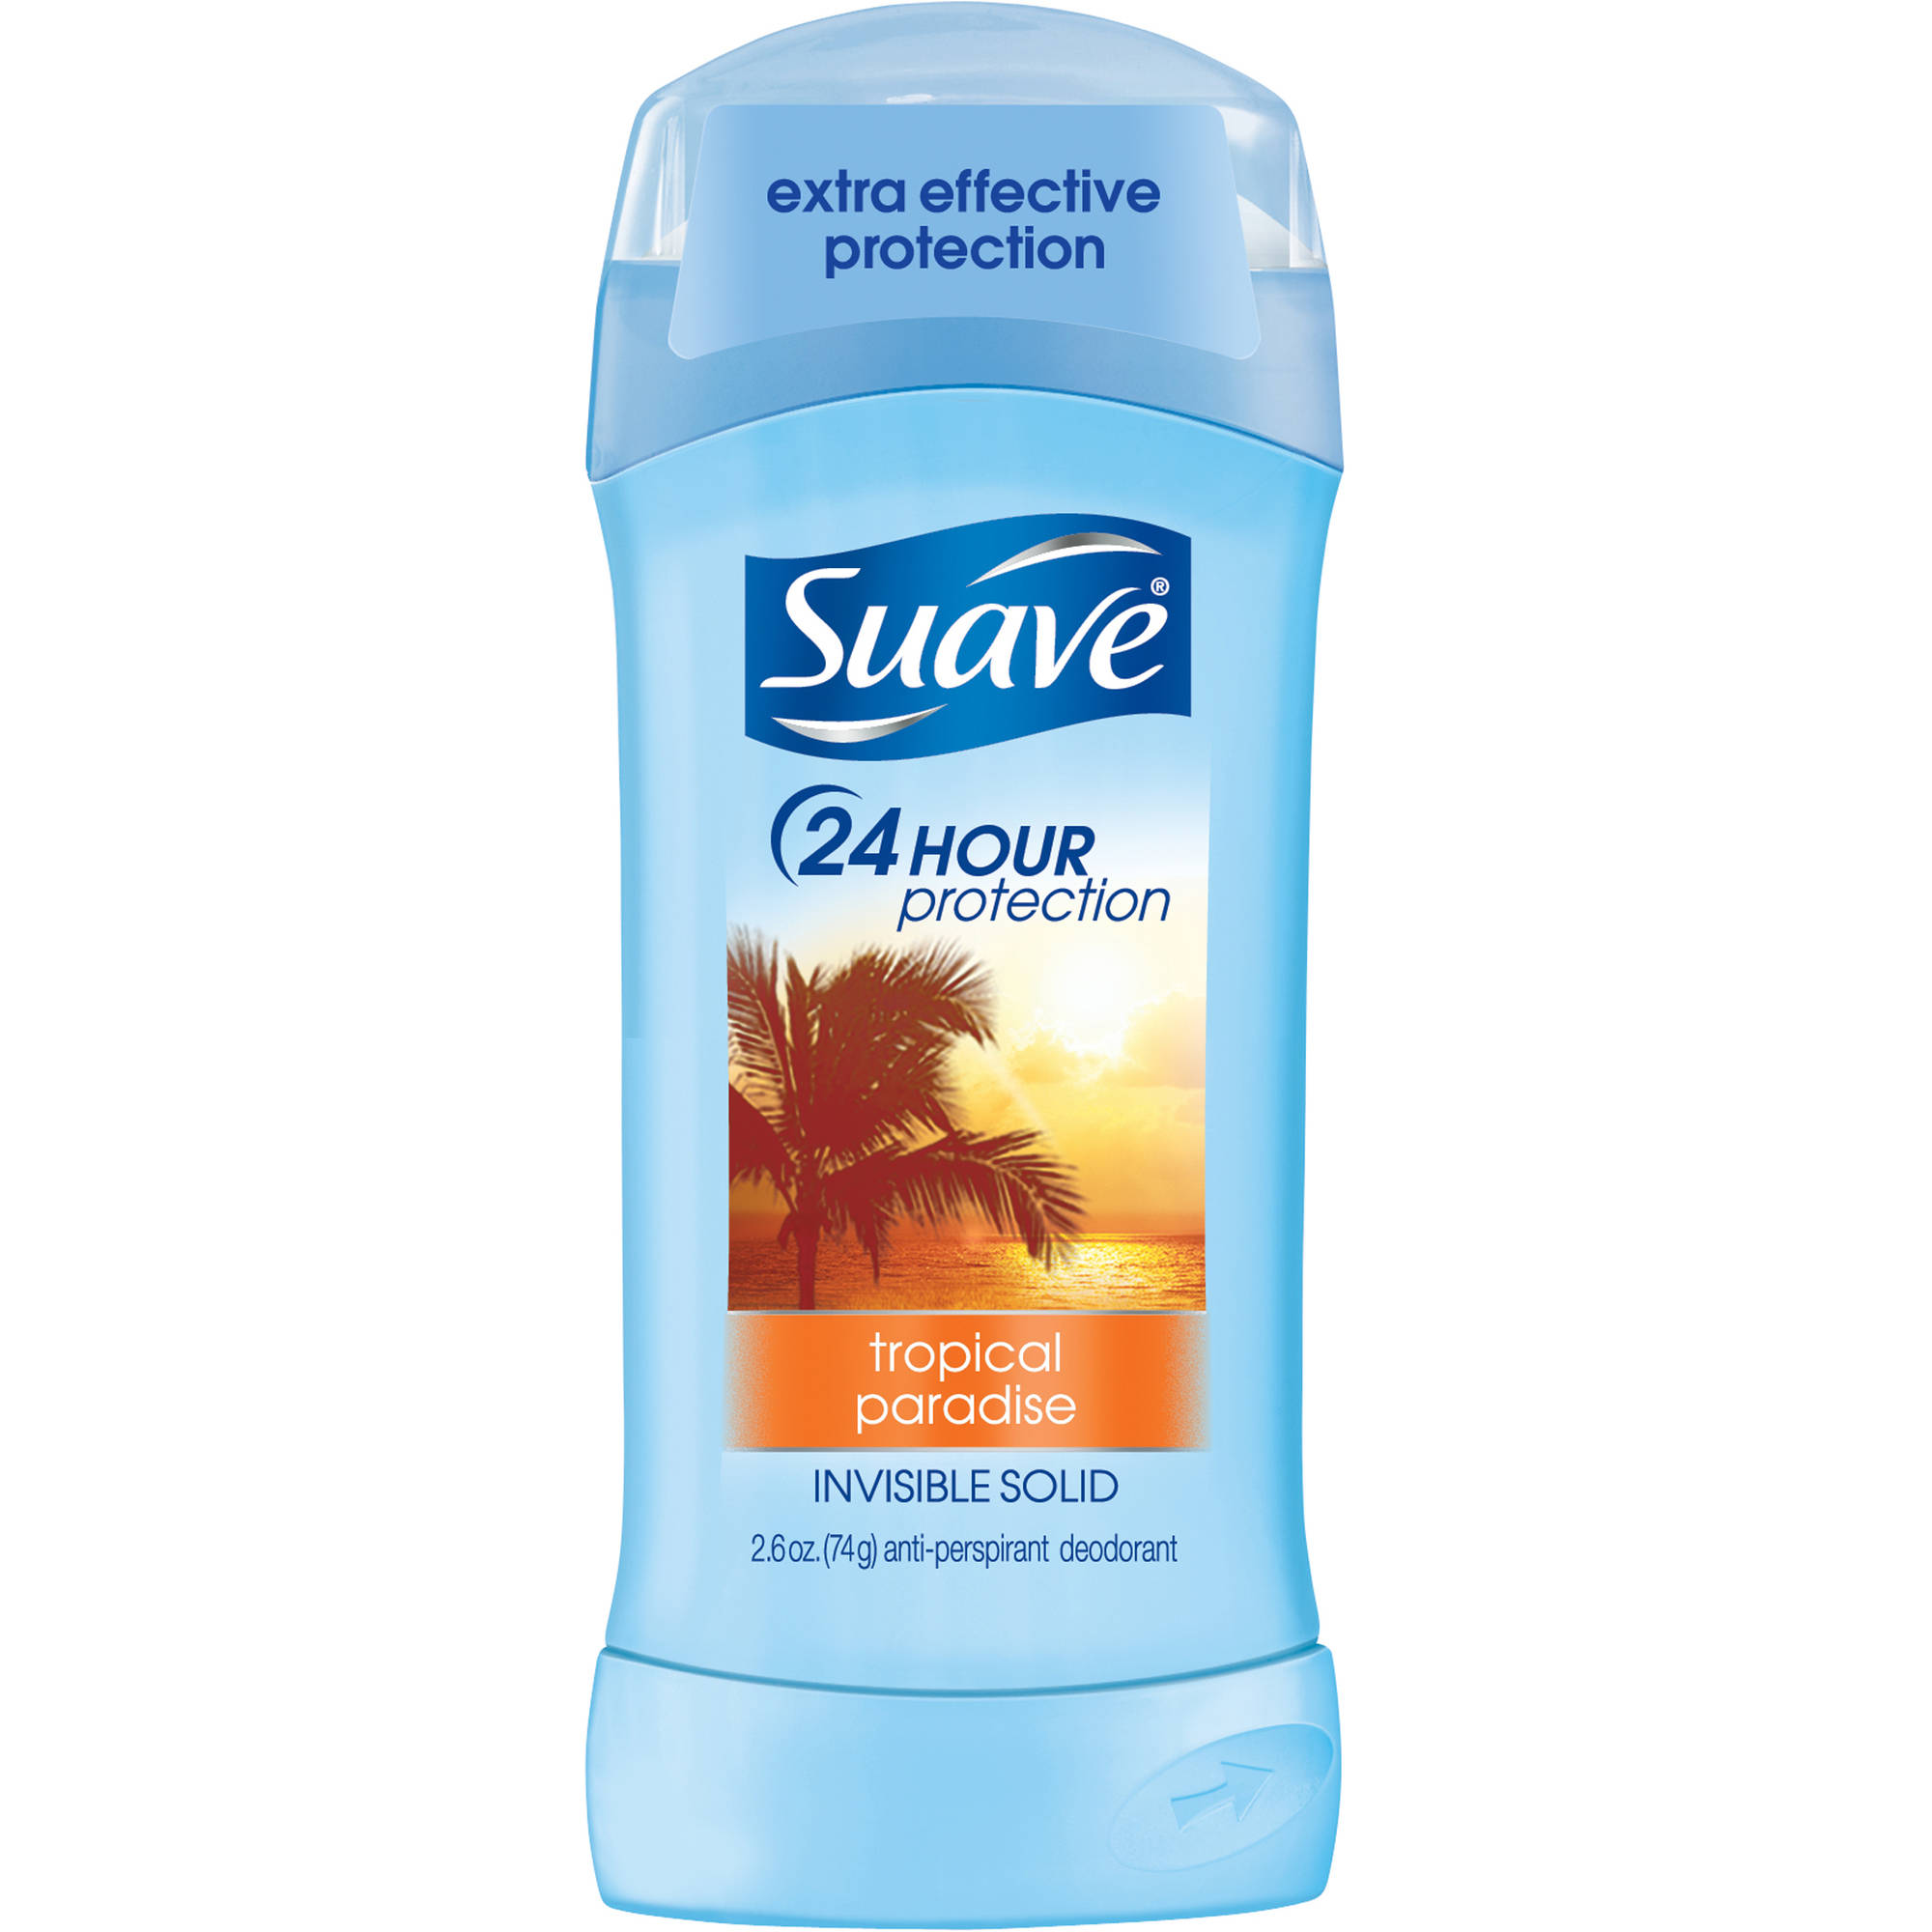 Suave Tropical Paradise Antiperspirant Deodorant, 2.6 oz